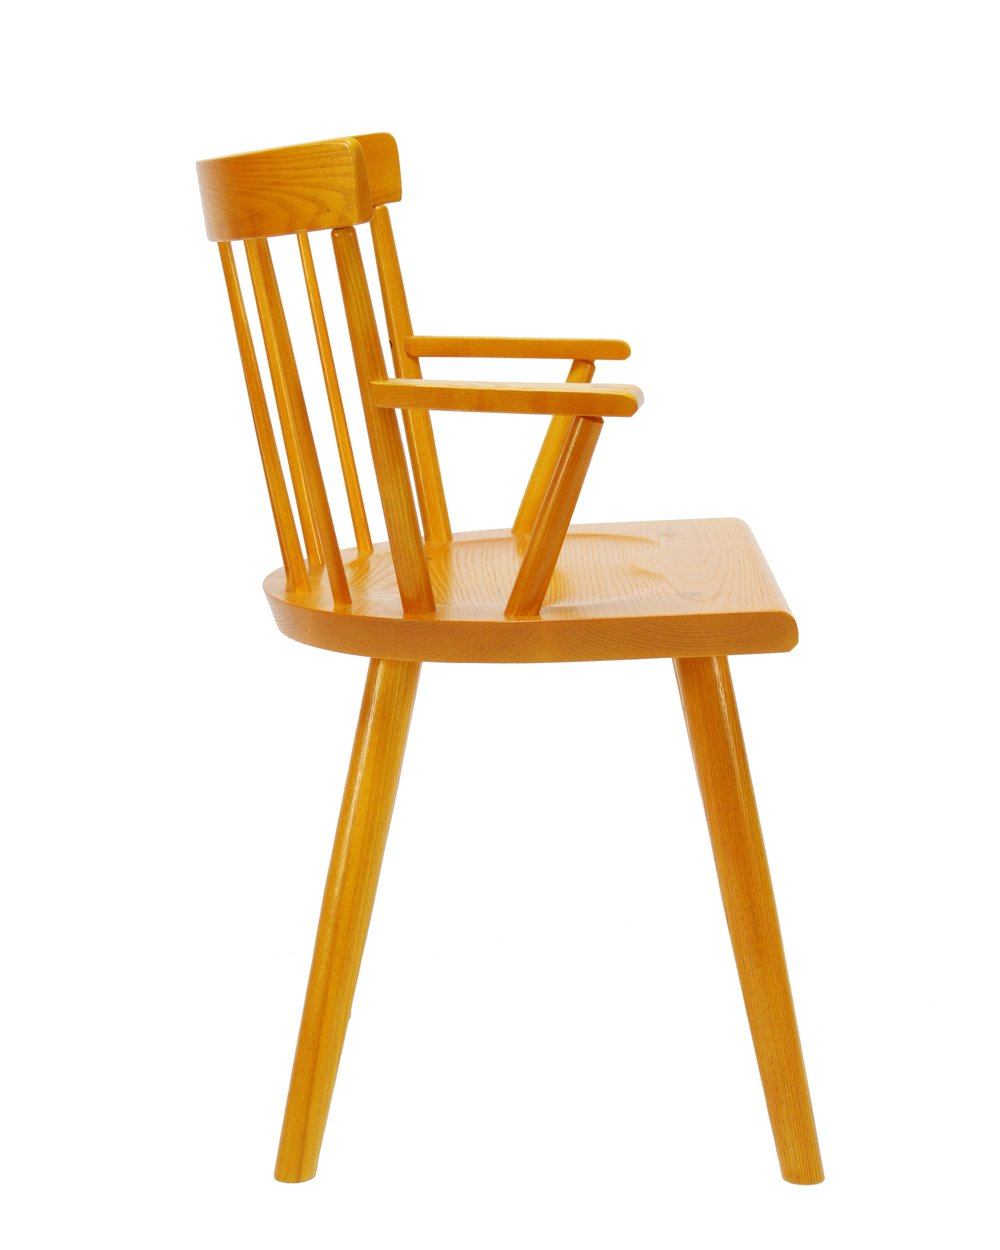 O&G Studio Colt Low Back Lowback Windsor Contemporary Dining Chair Armchair Large Turmeric Yellow Orange Ochre Sunshine Stain on Maple